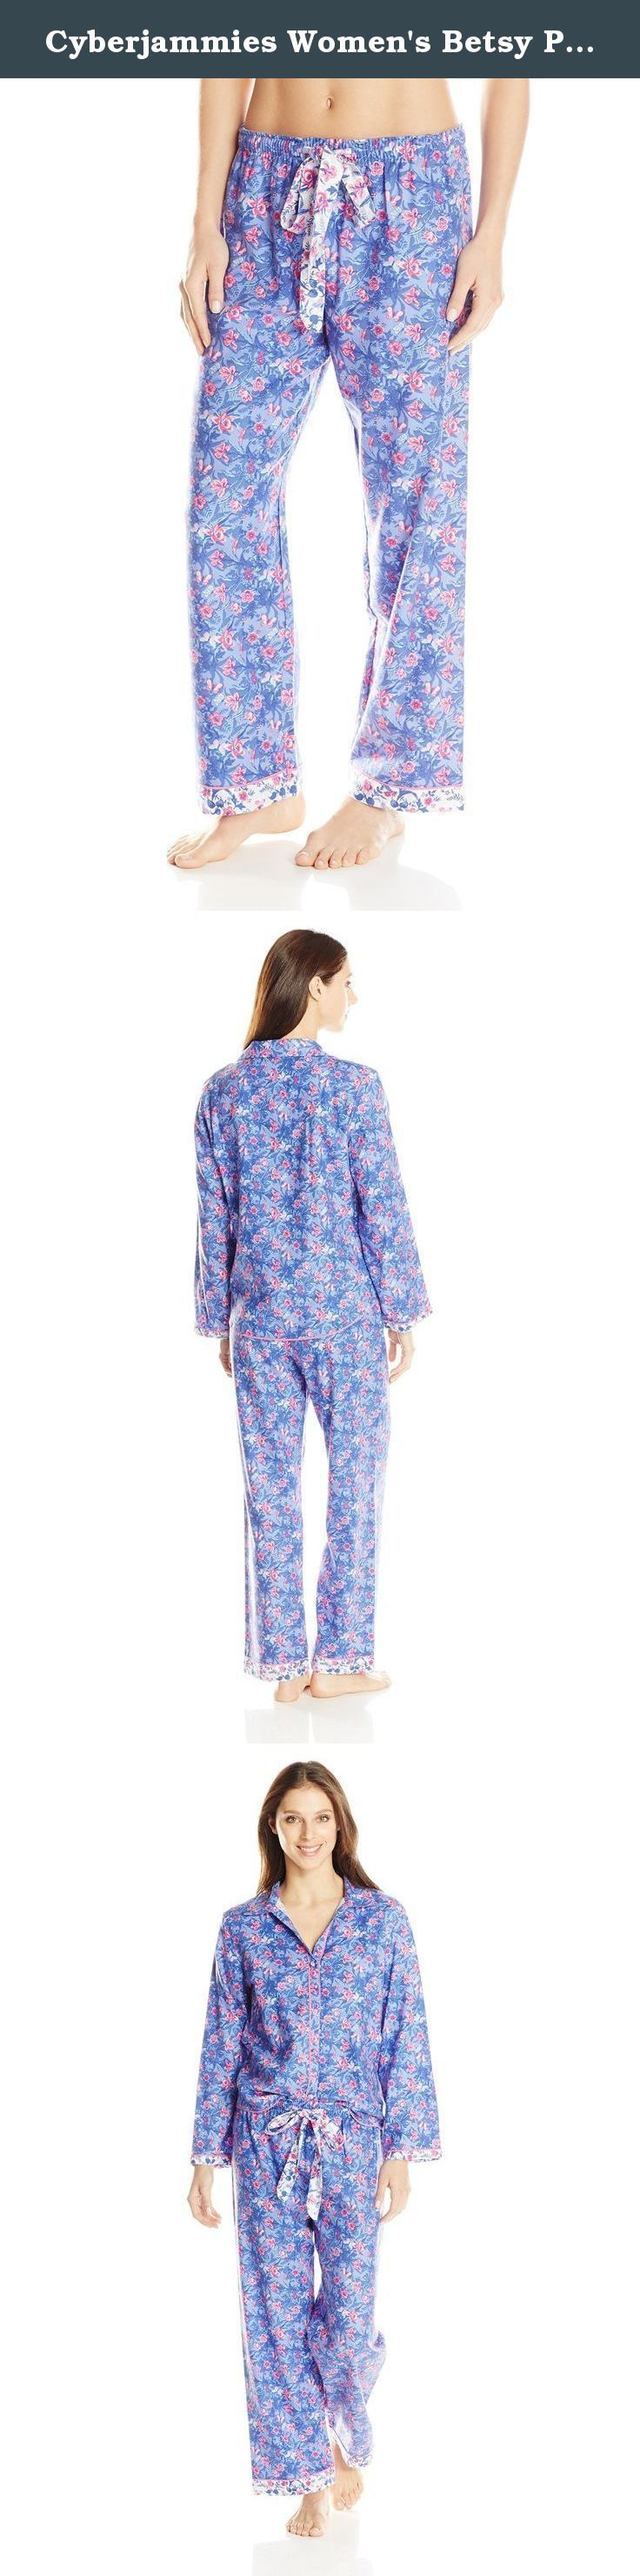 Cyberjammies Women's Betsy Print Pajama Set, Purple Mix, 10/Medium. Cyberjammies offer exceptional quality nightwear and lounge wear, too good to sleep in. Our fabrics are extra soft and specifically designed for comfort in bed. Our colors, trims and styling are fun and different. Fit is comfortable, yet feminine to ensure you look stylish in the bedroom or on the sofa.